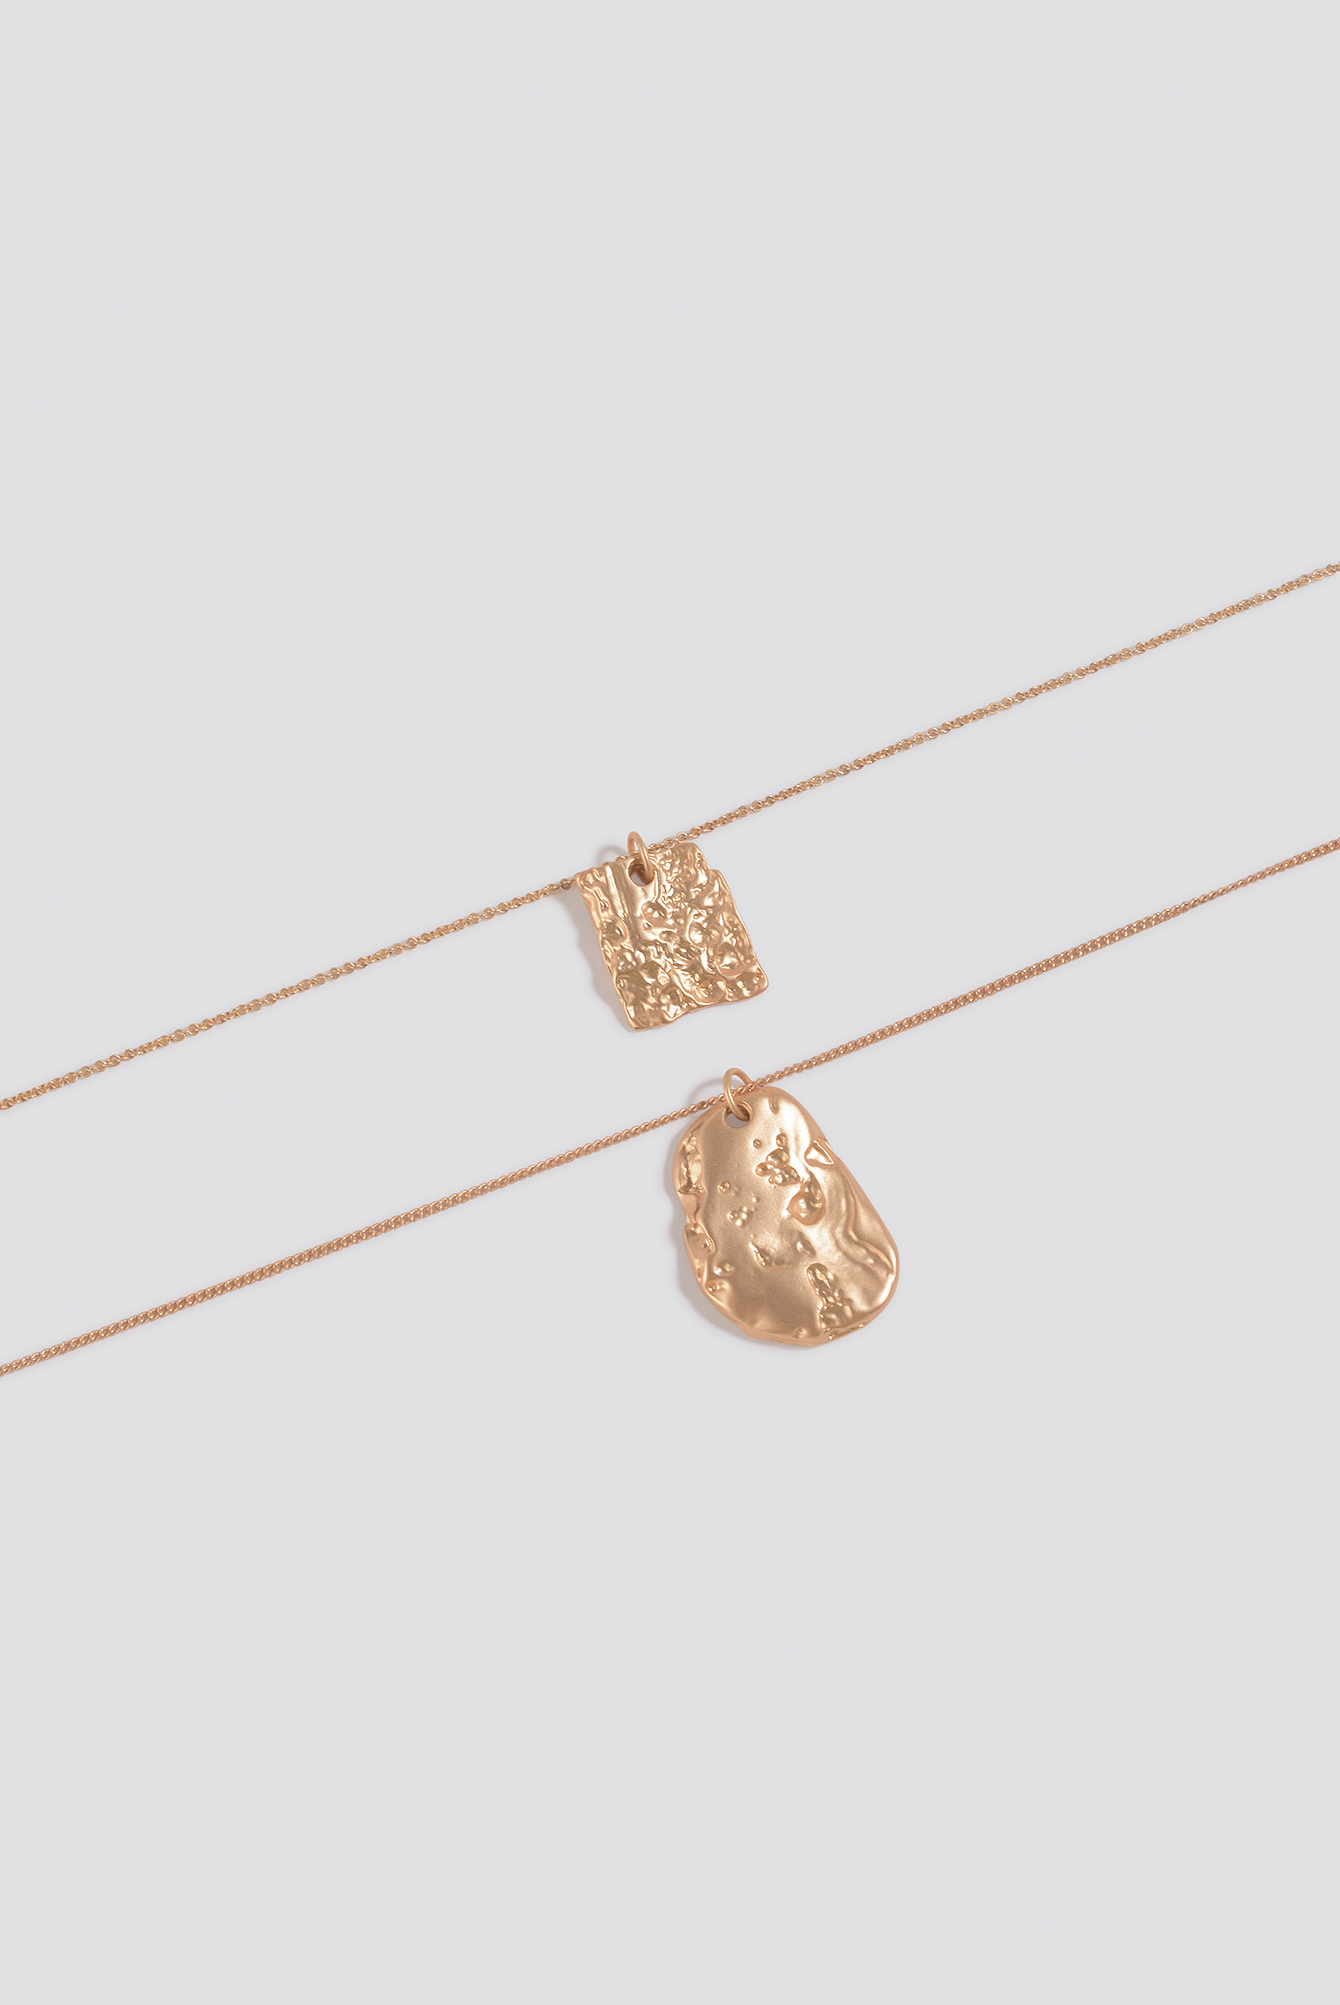 Gold Long Double Textured Pendant Necklace